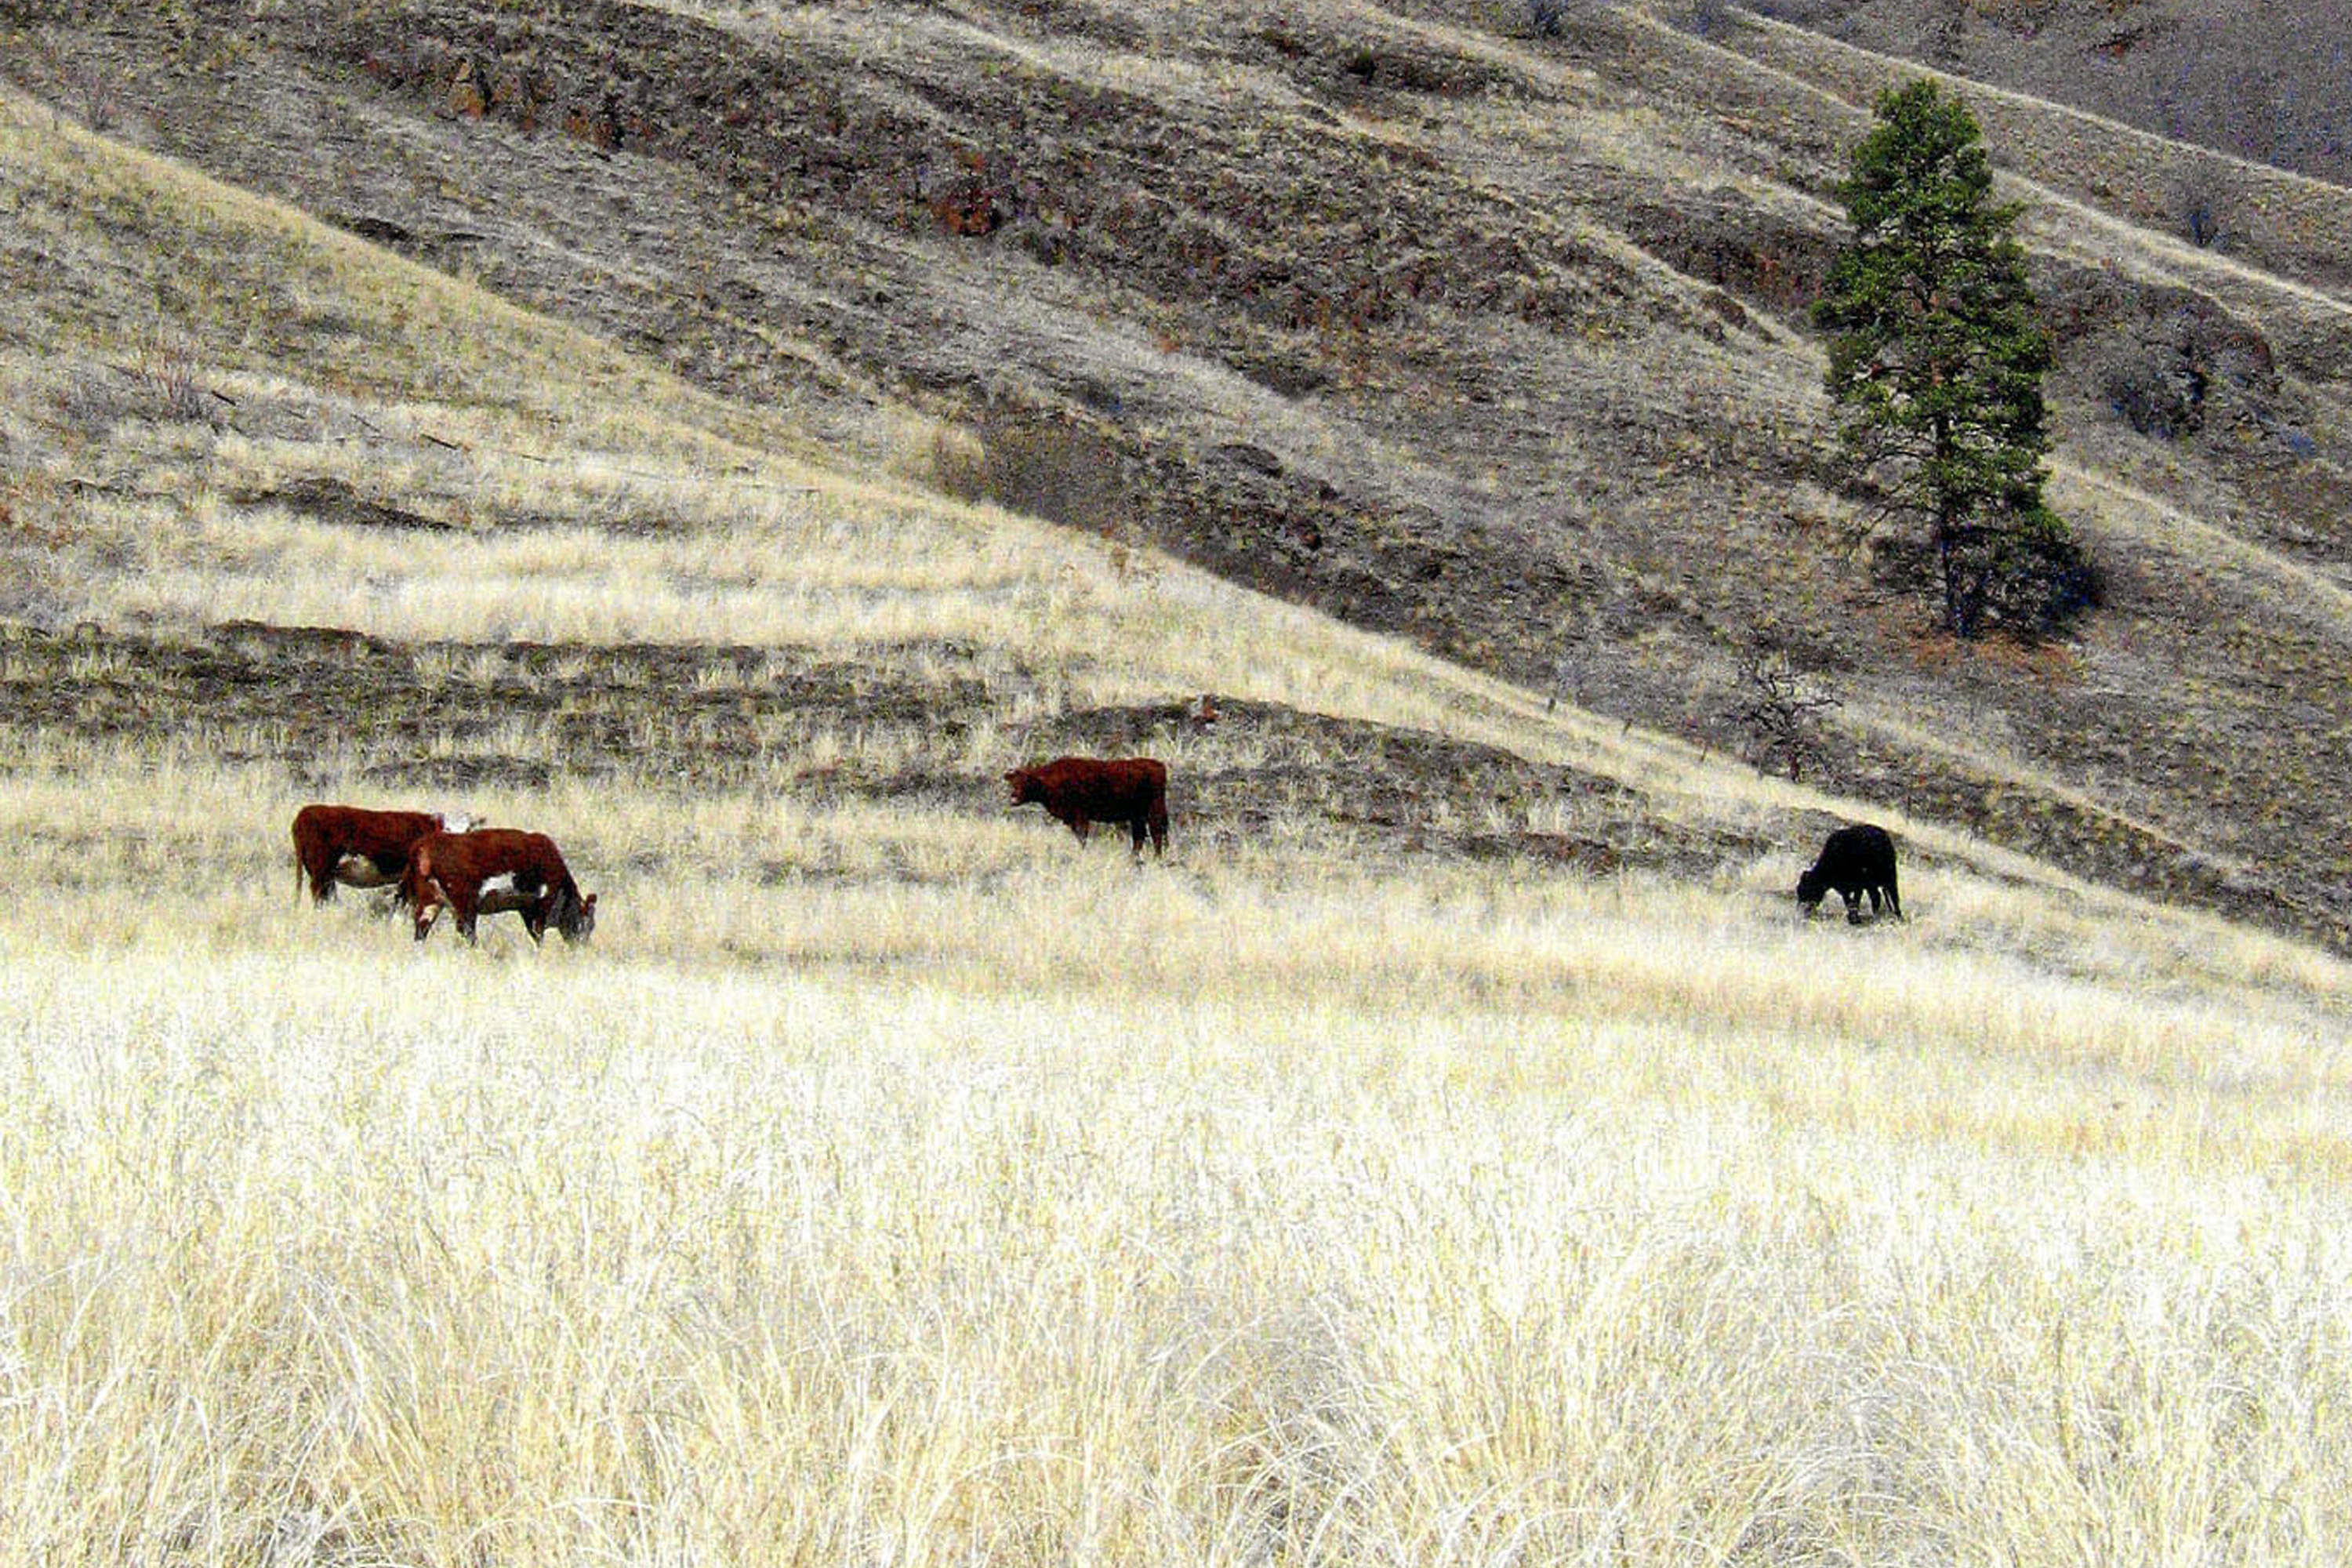 Group sues US for details about impact of grazing program